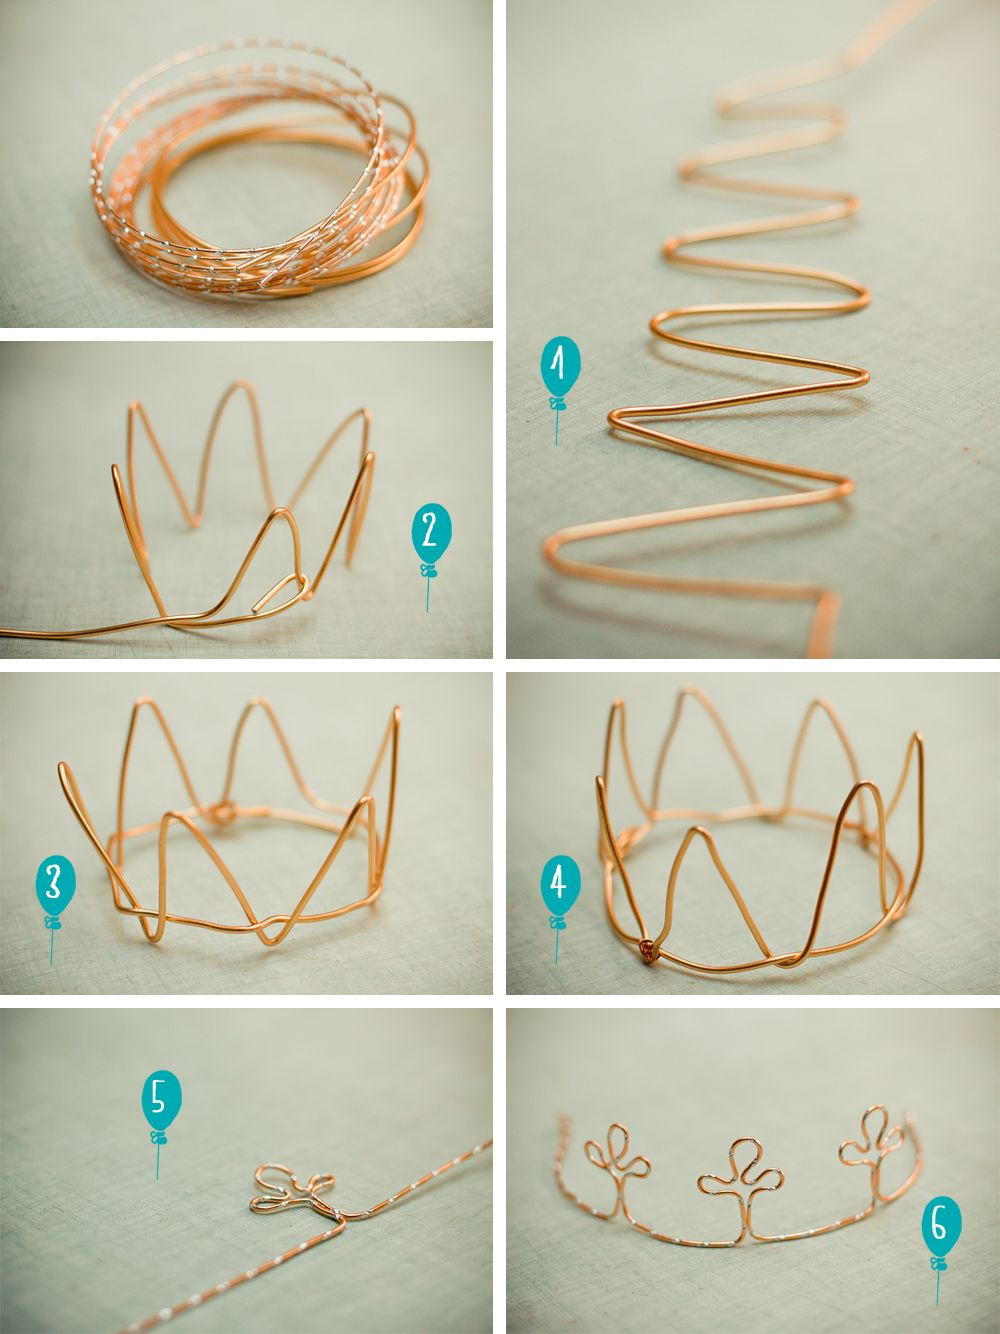 Diy la couronne de max wire crown crown and crafts diy la couronne de max solutioingenieria Image collections